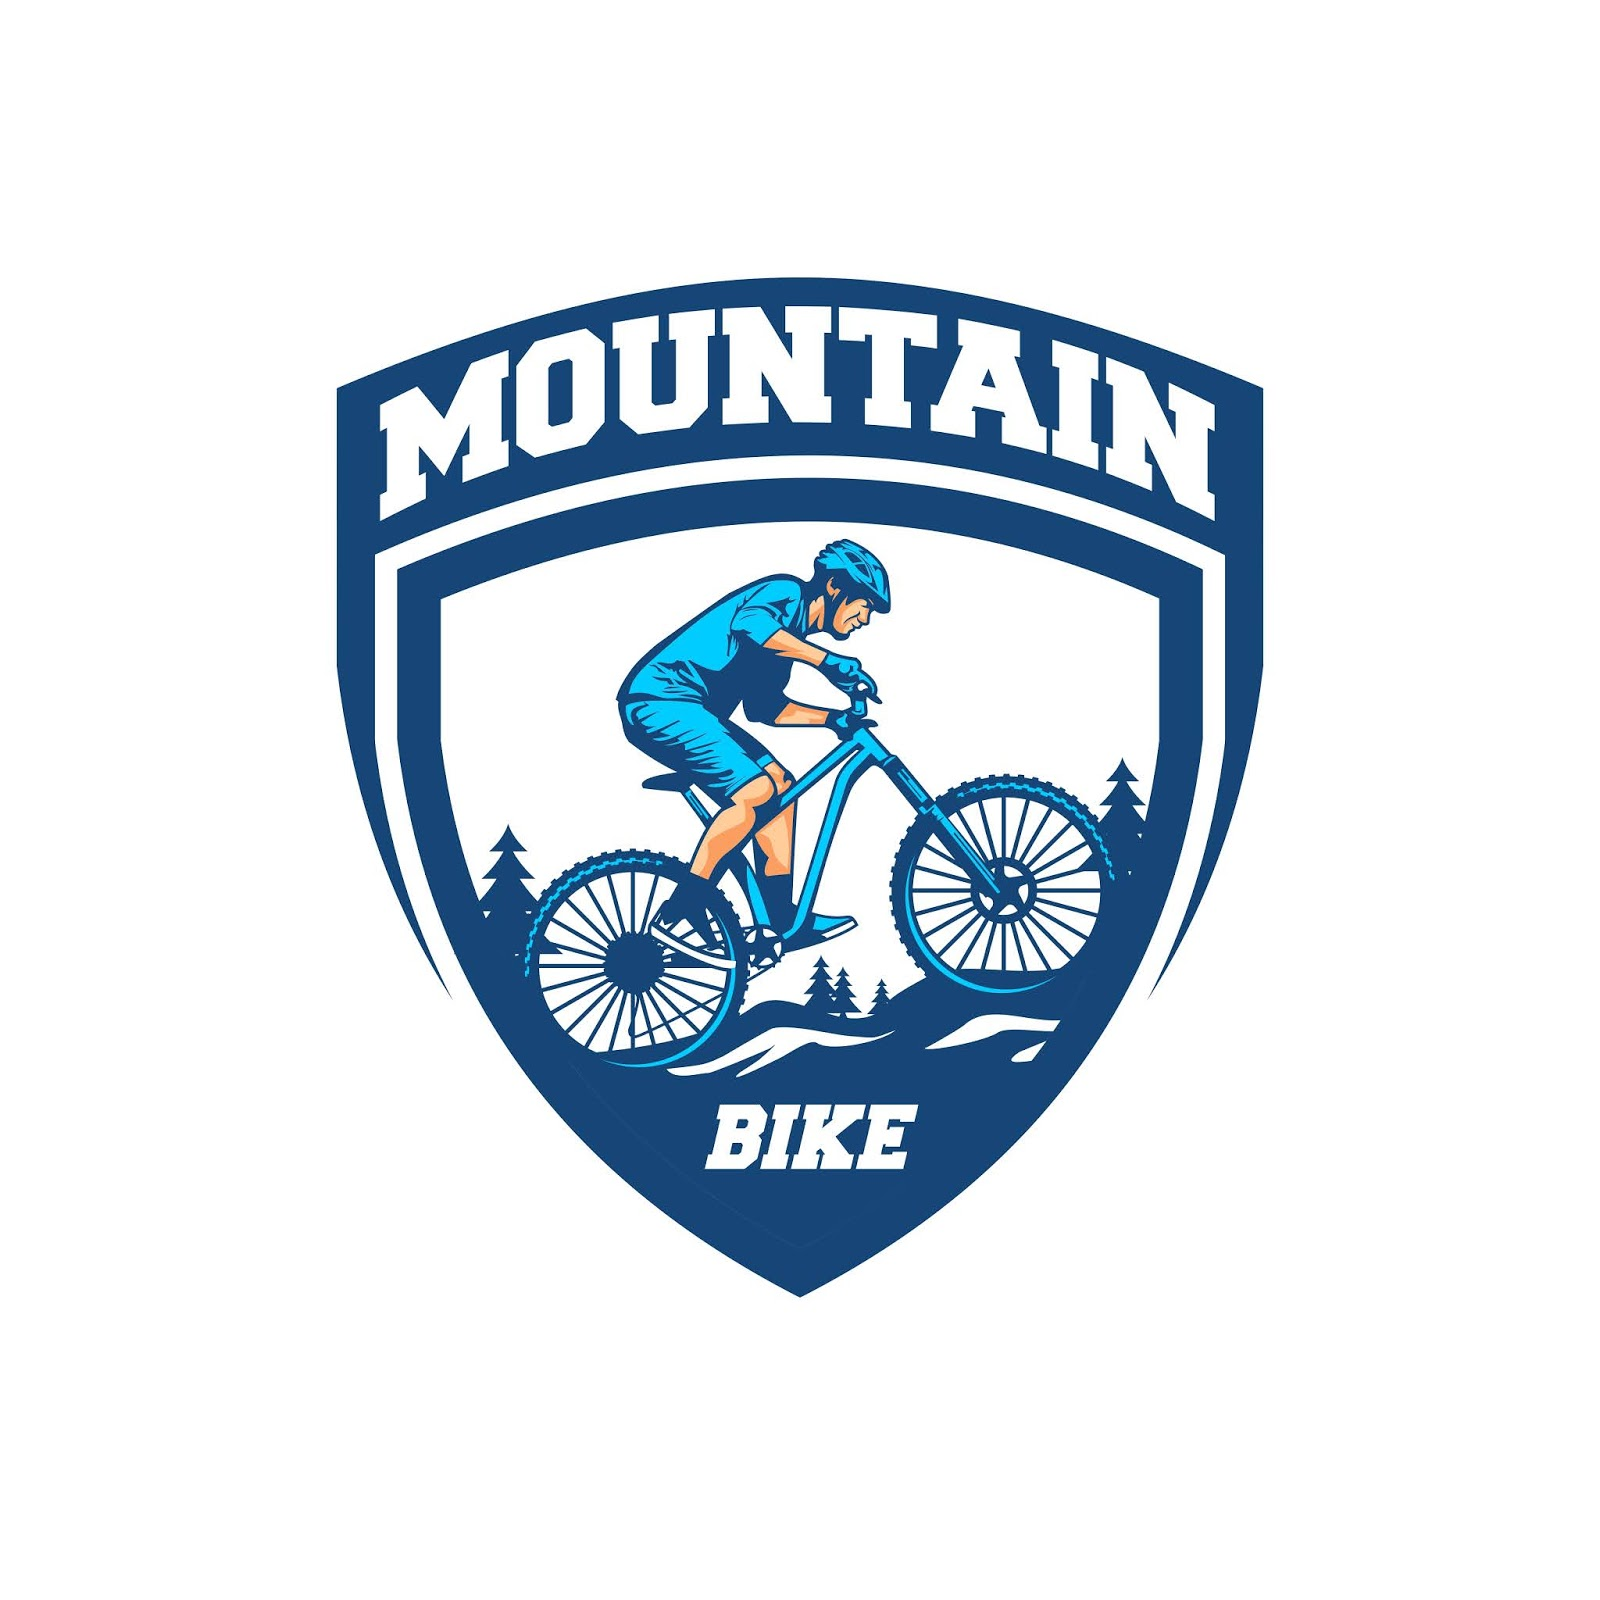 Mountain Bike Vector Free Download Vector CDR, AI, EPS and PNG Formats